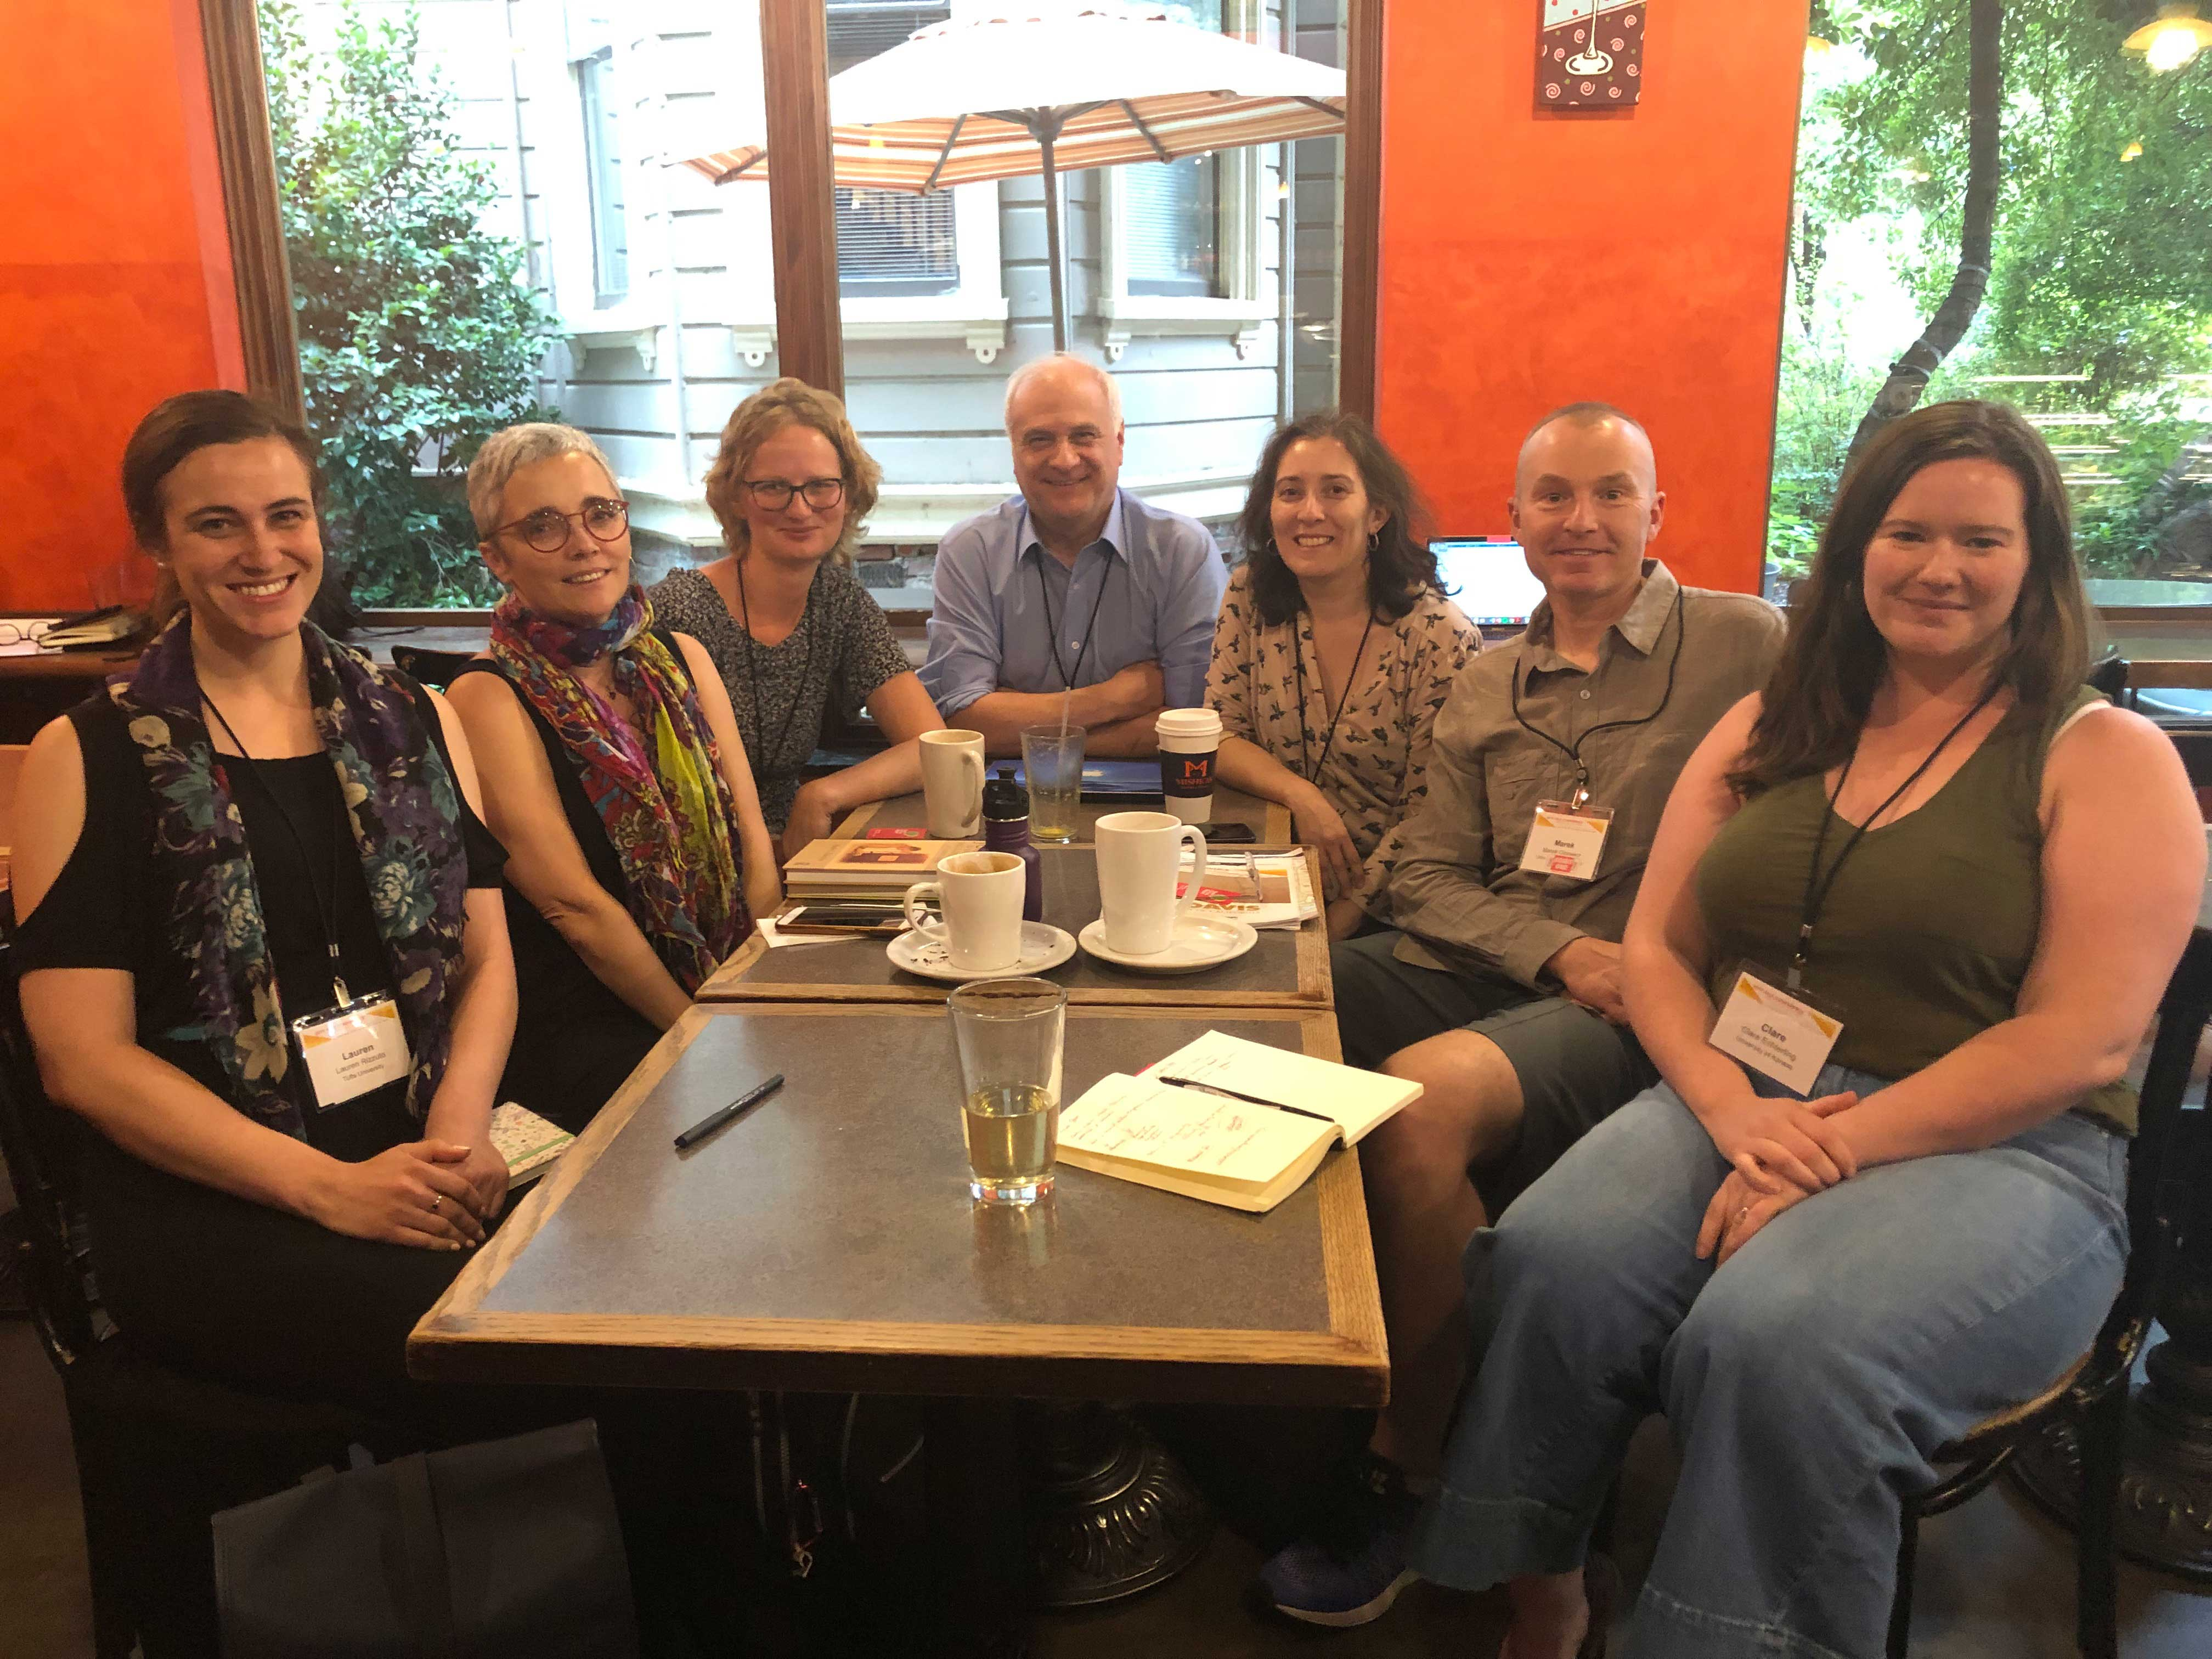 Members of the ASLE group have a meeting.